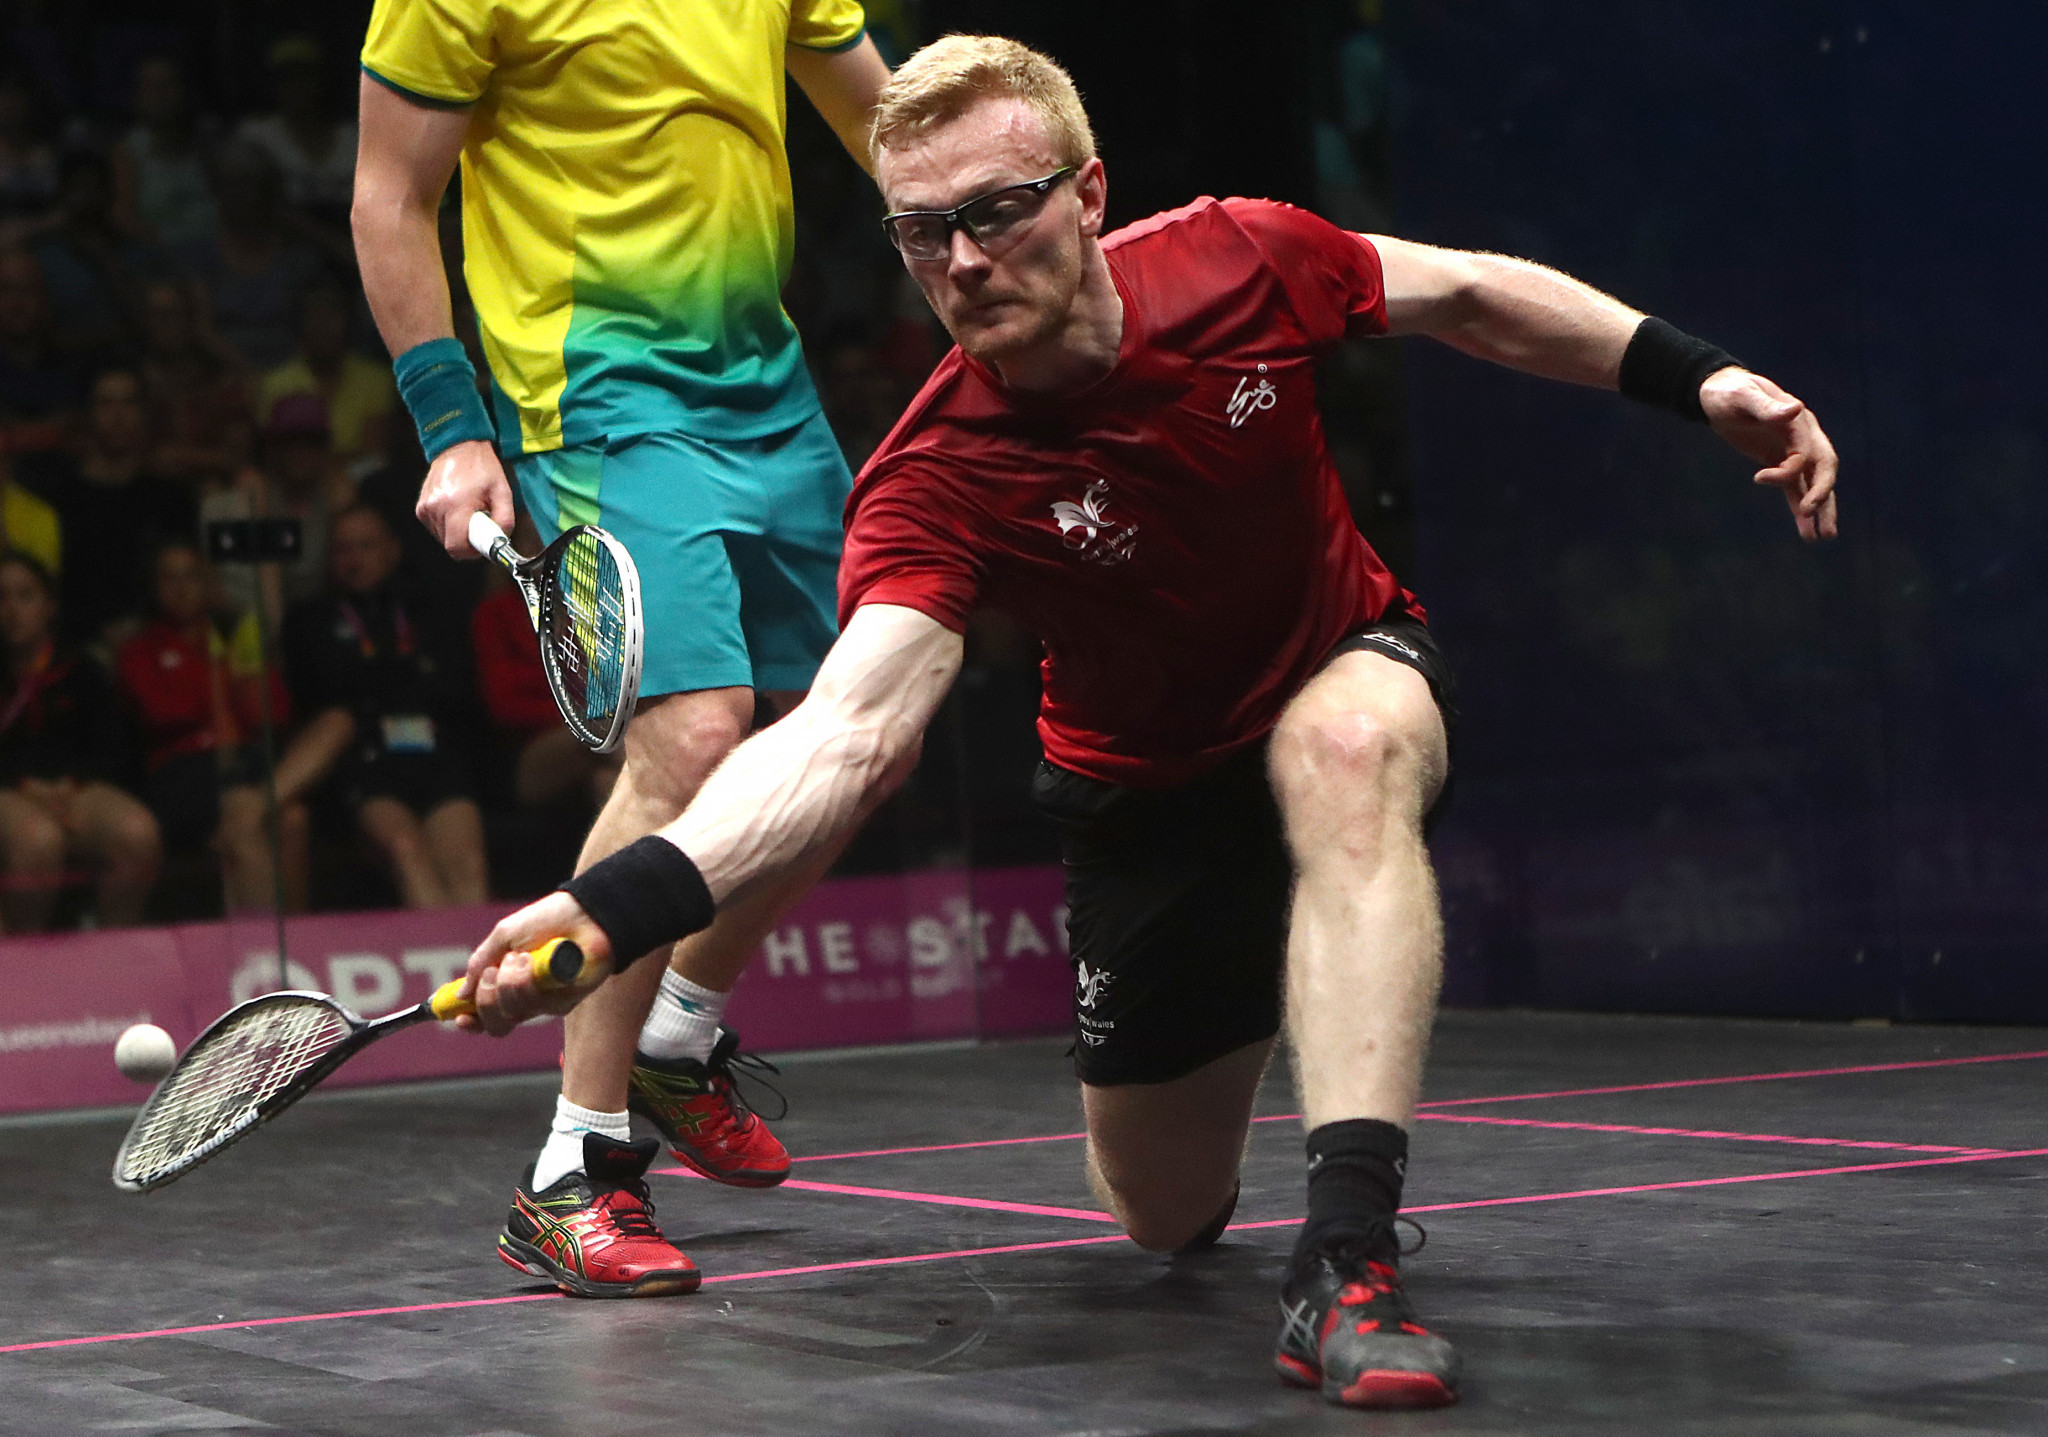 Makin first Welshman to crack squash's top 10 since 2002